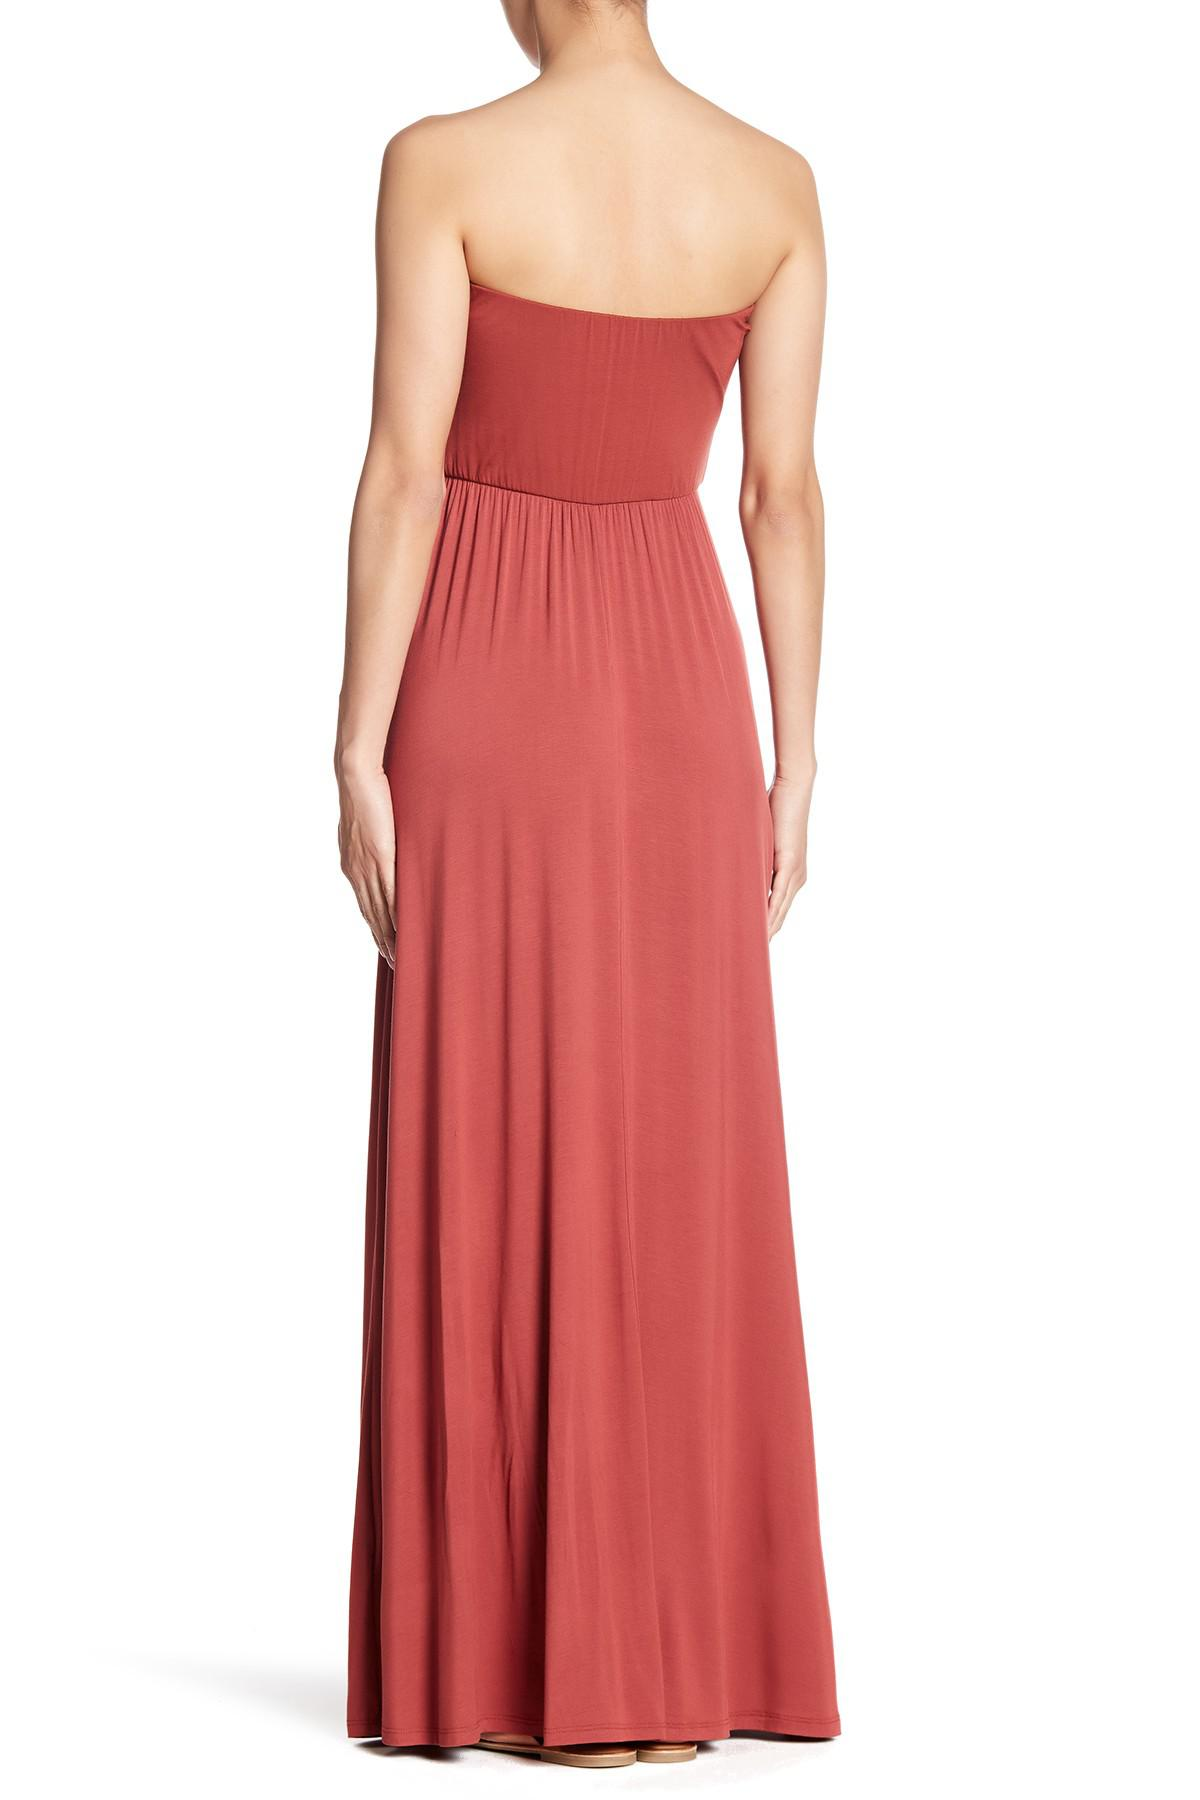 Lyst - West Kei Strapless Maxi Dress in Red